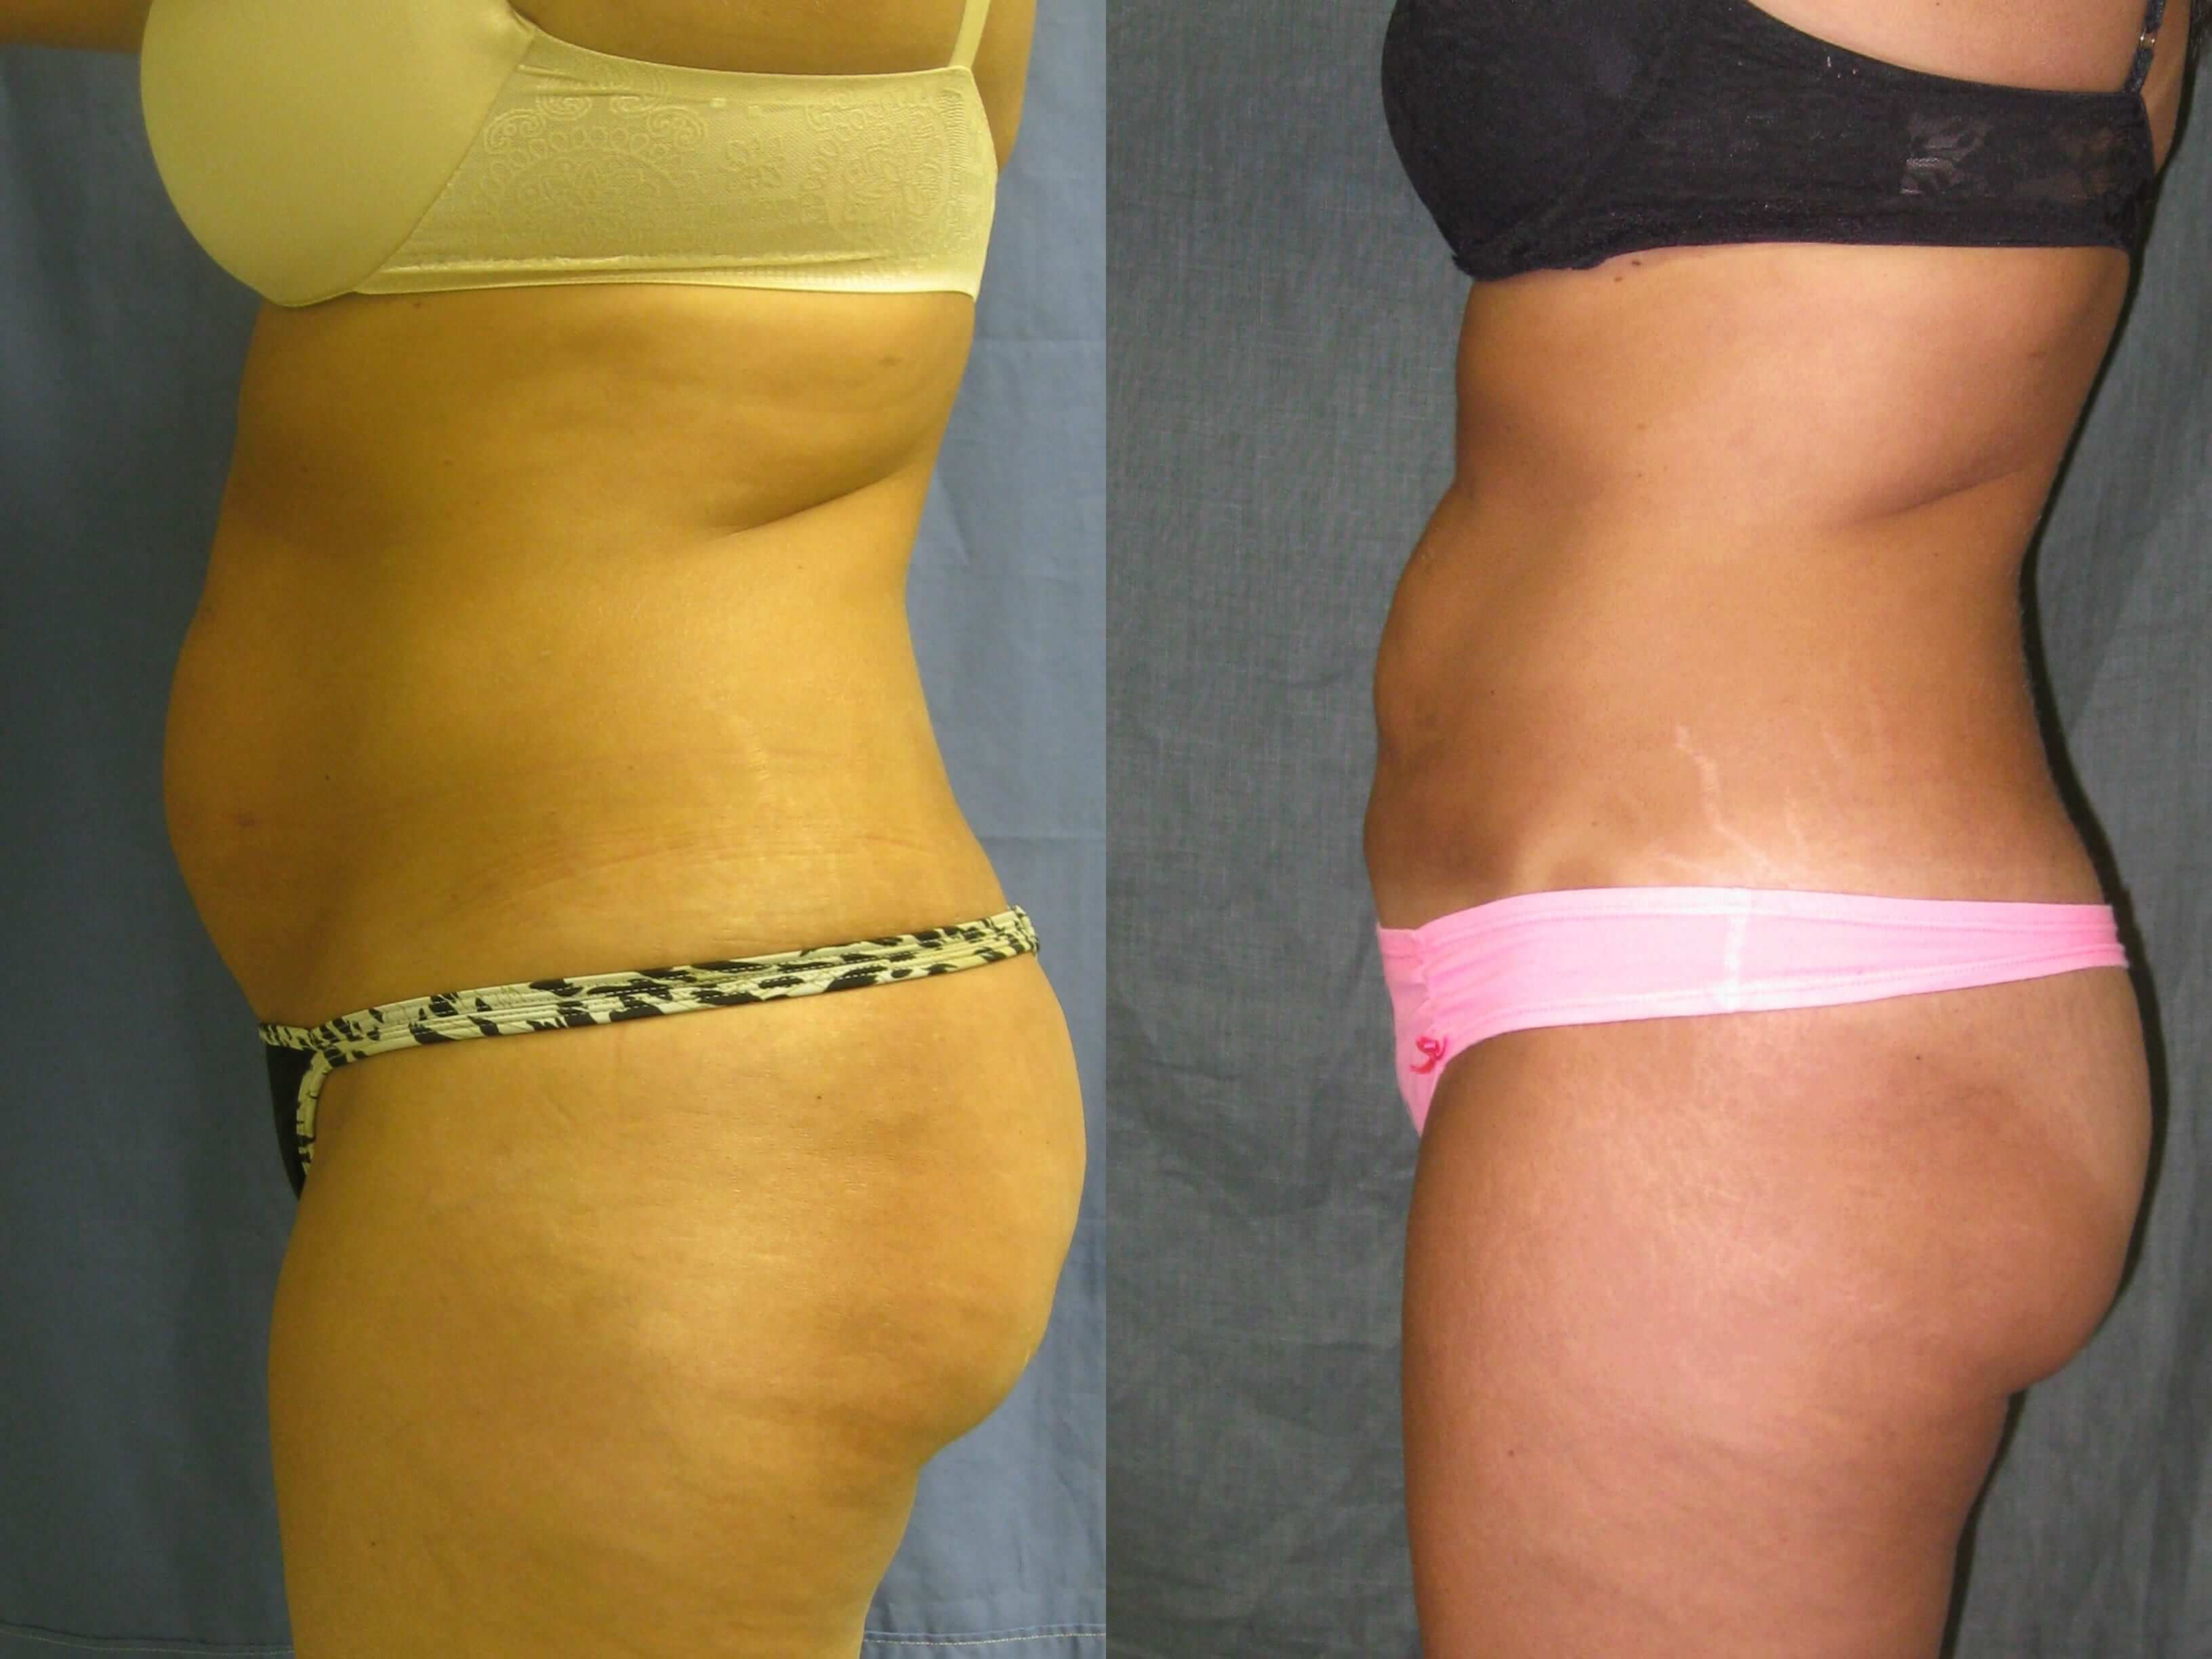 Dr. Matt Goldschmidt | Liposuction Before & After Photo